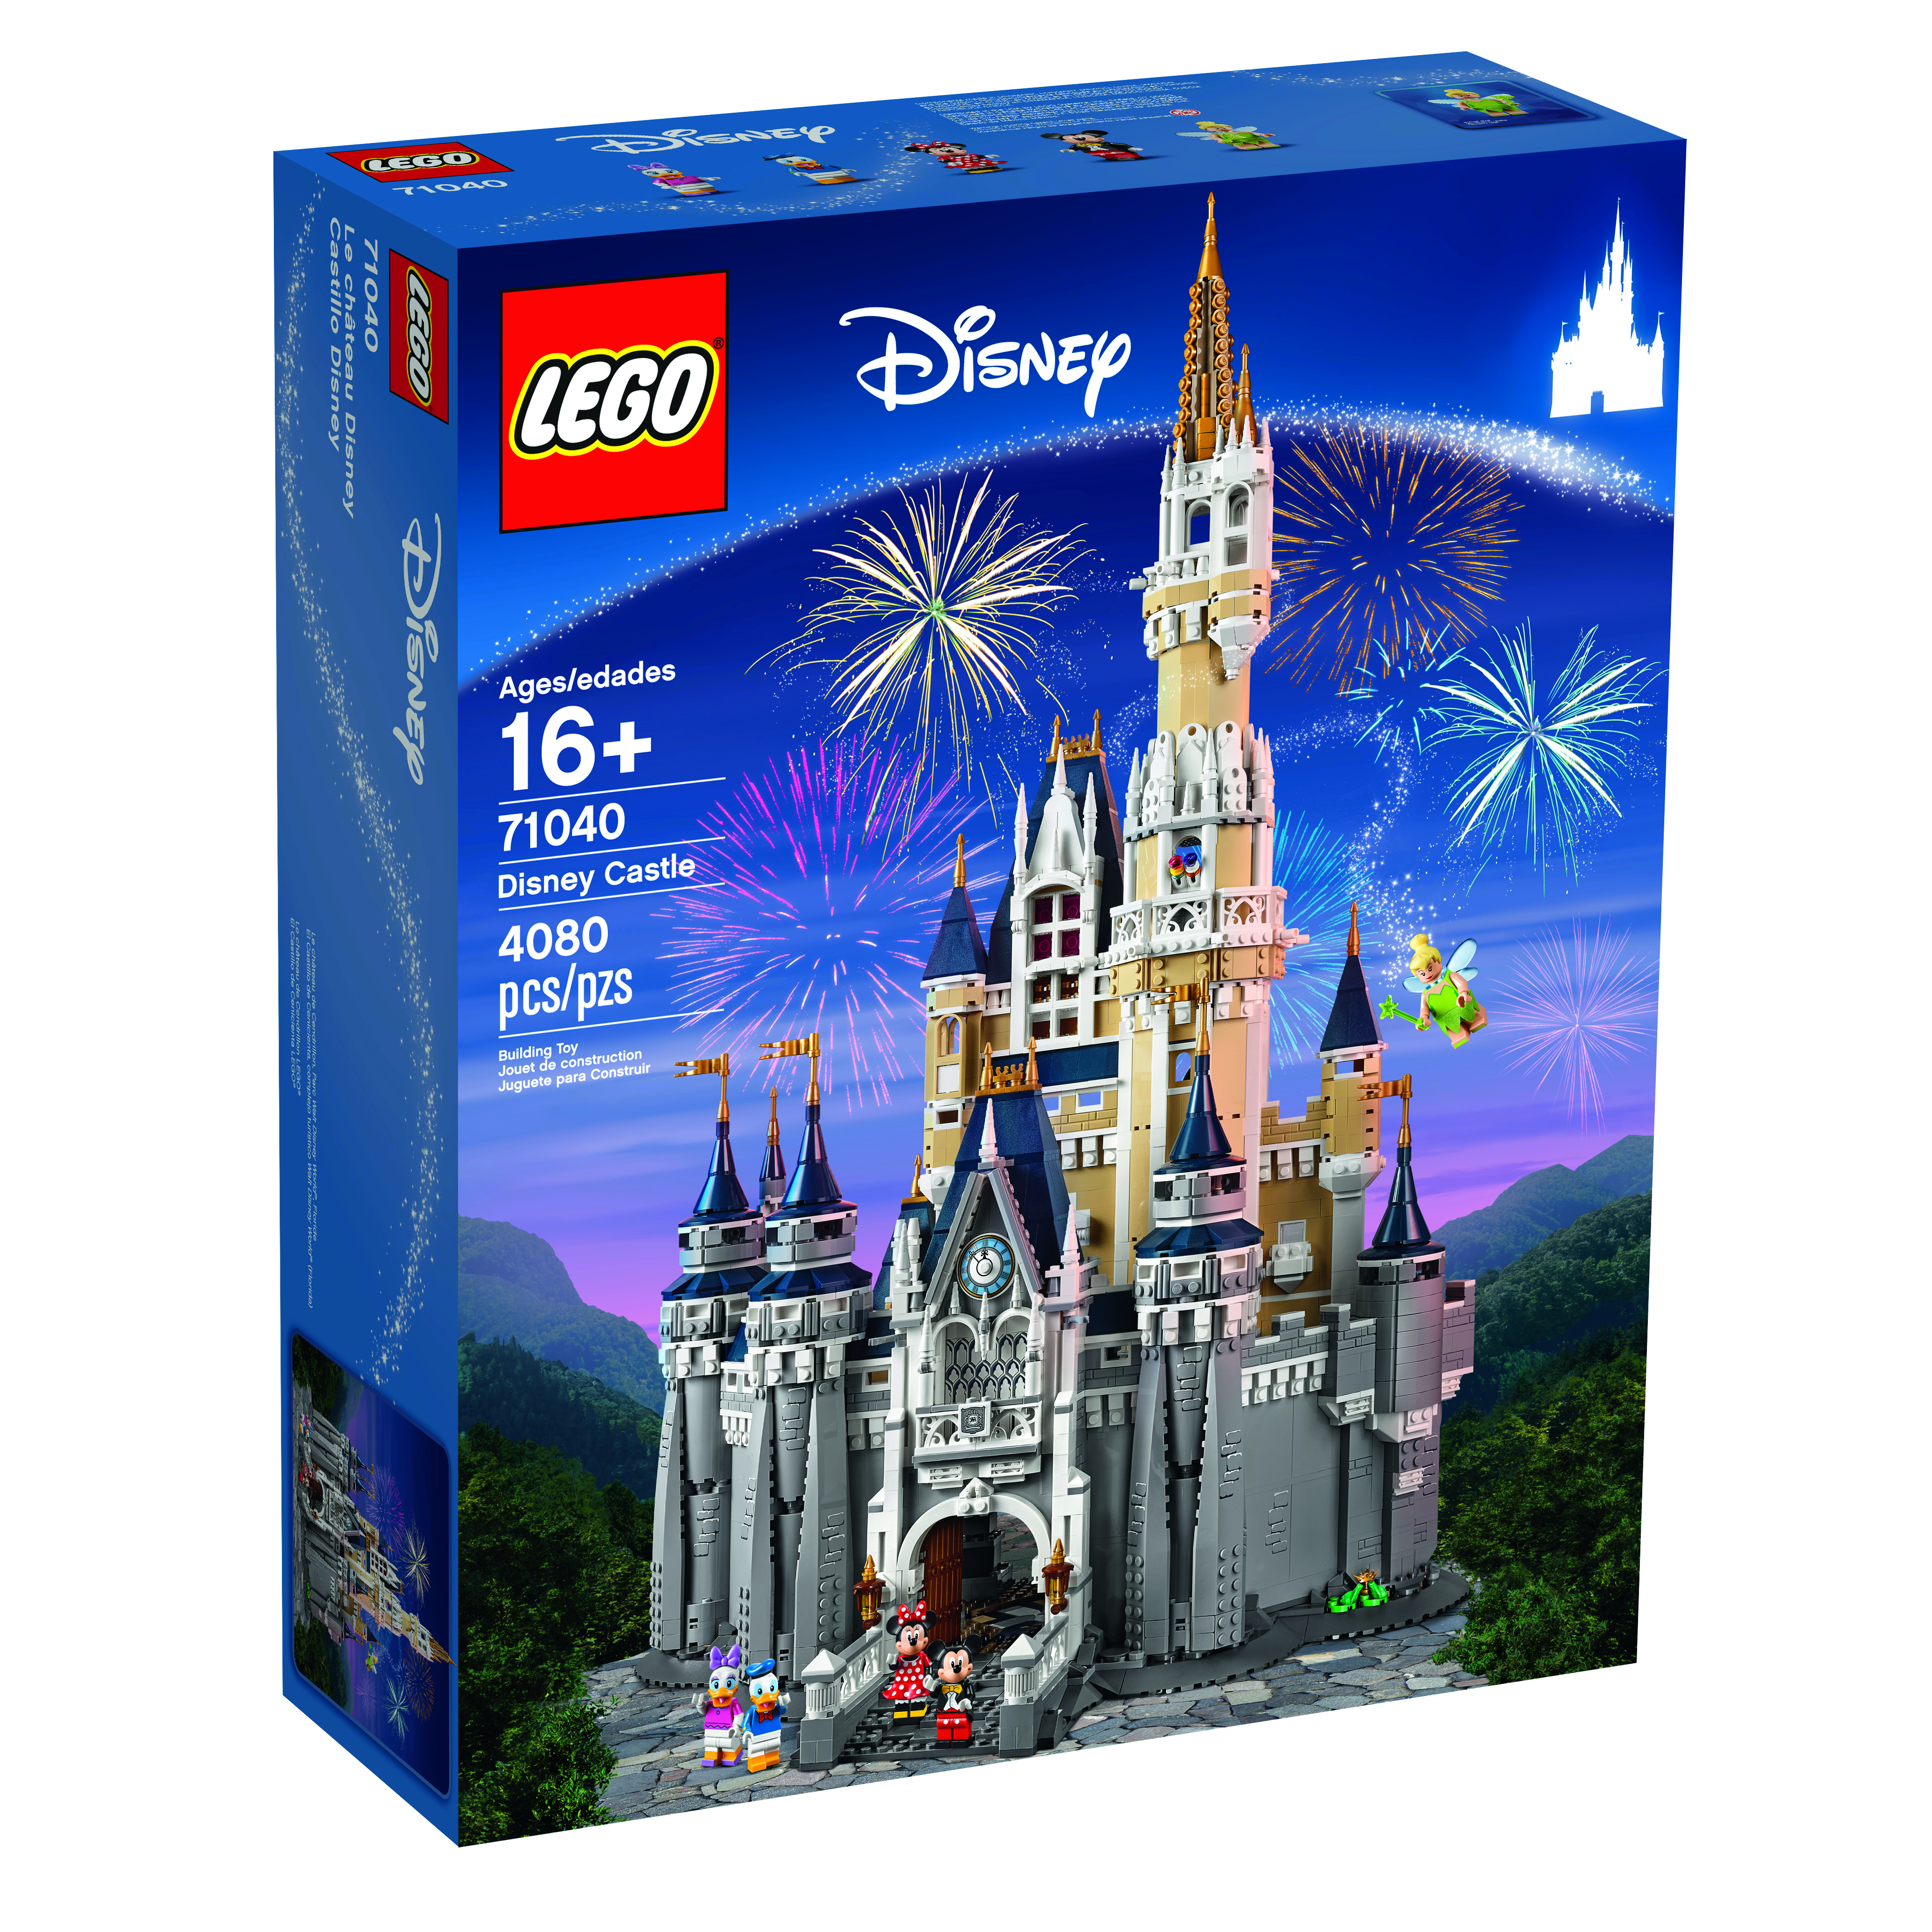 bring the magical world of disney to your home with the disney castle this highly detailed lego model with over 4000 pieces offers a rewarding build and - Blue Castle 2016